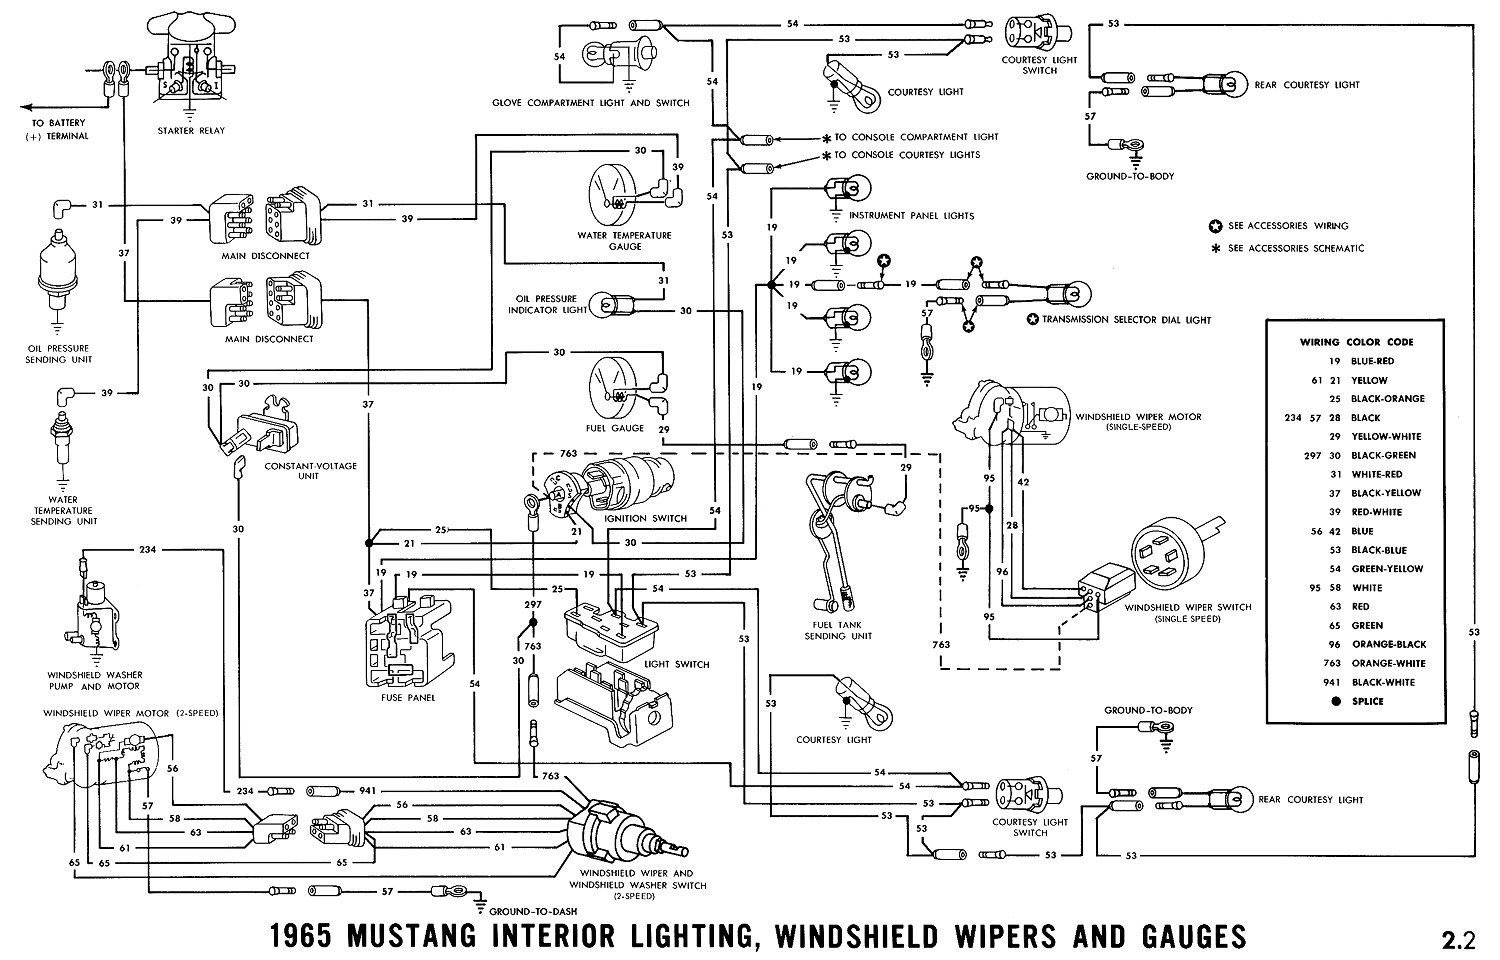 1965g 1965 mustang wiring diagrams average joe restoration 65 mustang engine wiring diagram at soozxer.org